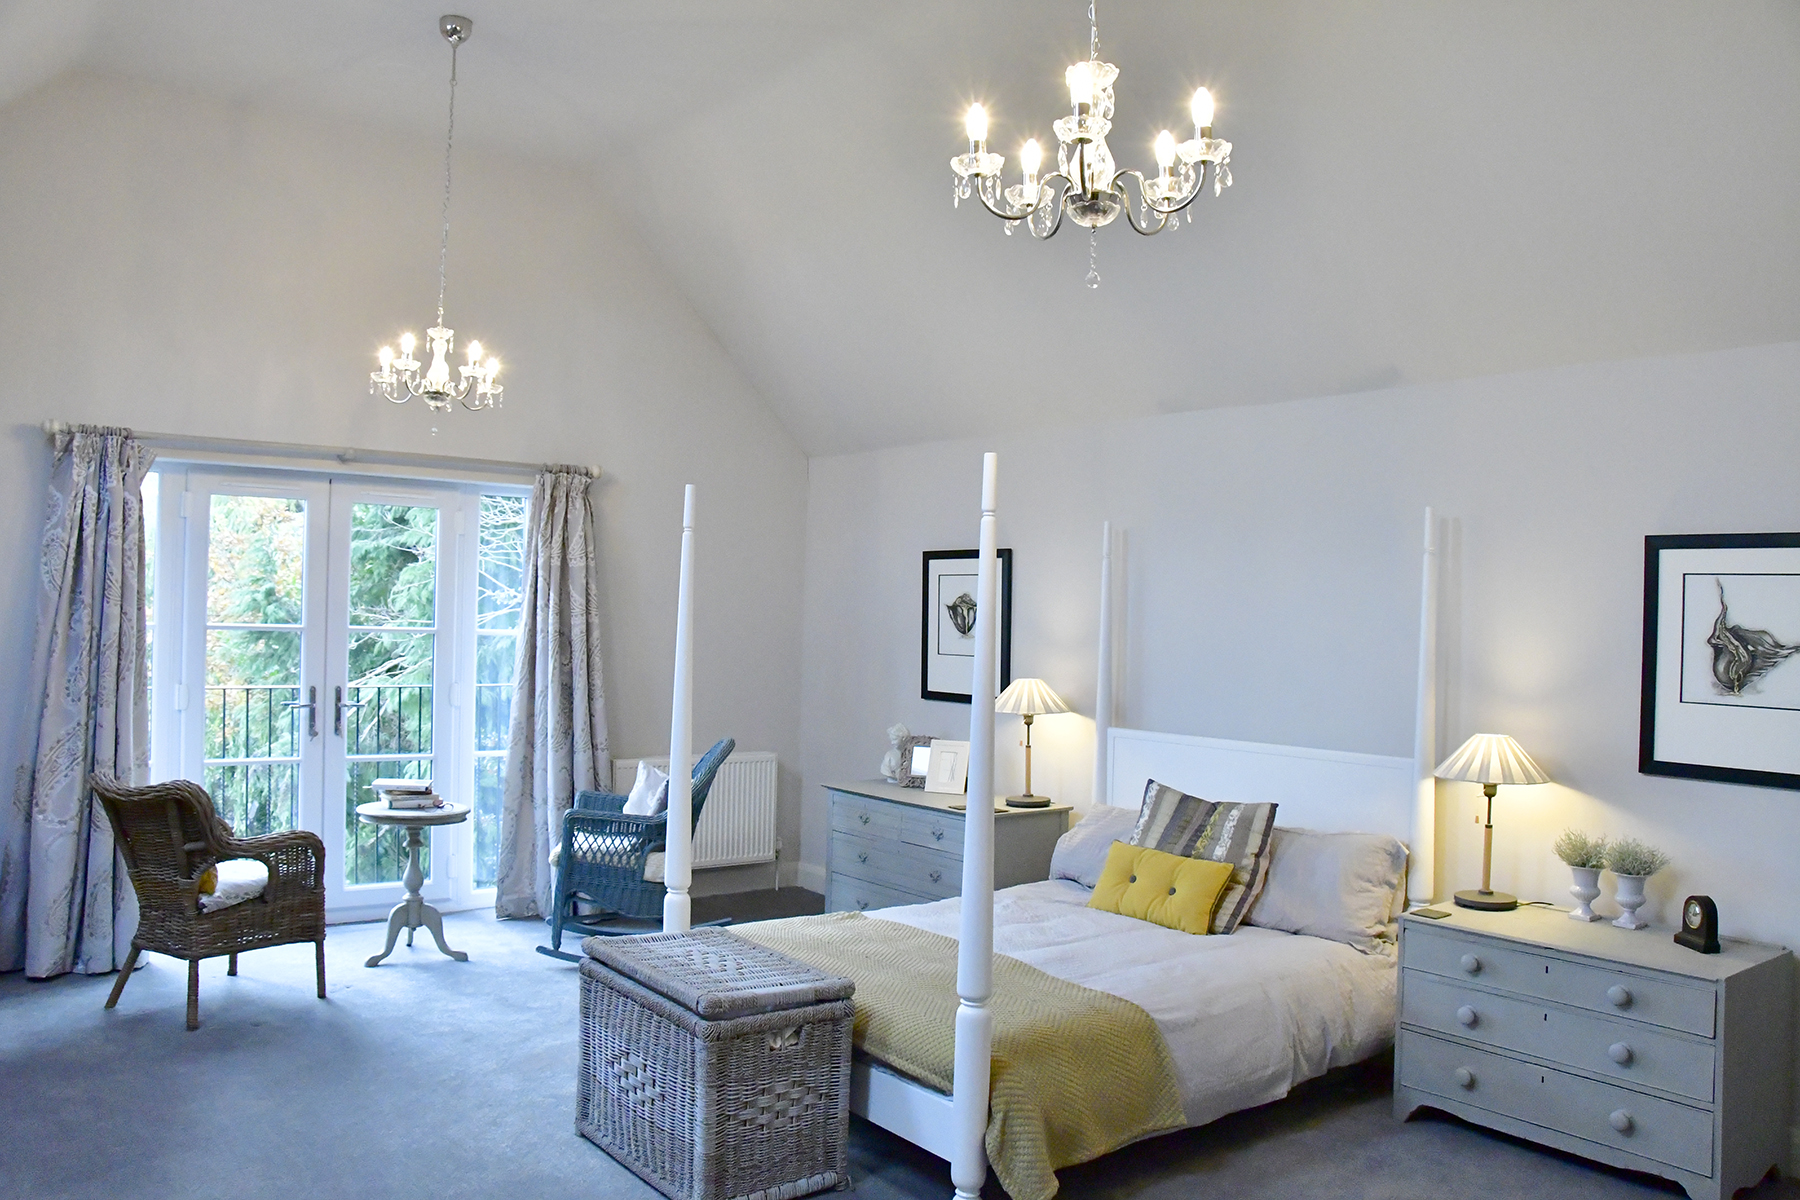 Bedroom Design by Sarah Maidment Interiors, interior designer in Berkhamsted, St. Albans, Hertfordshire